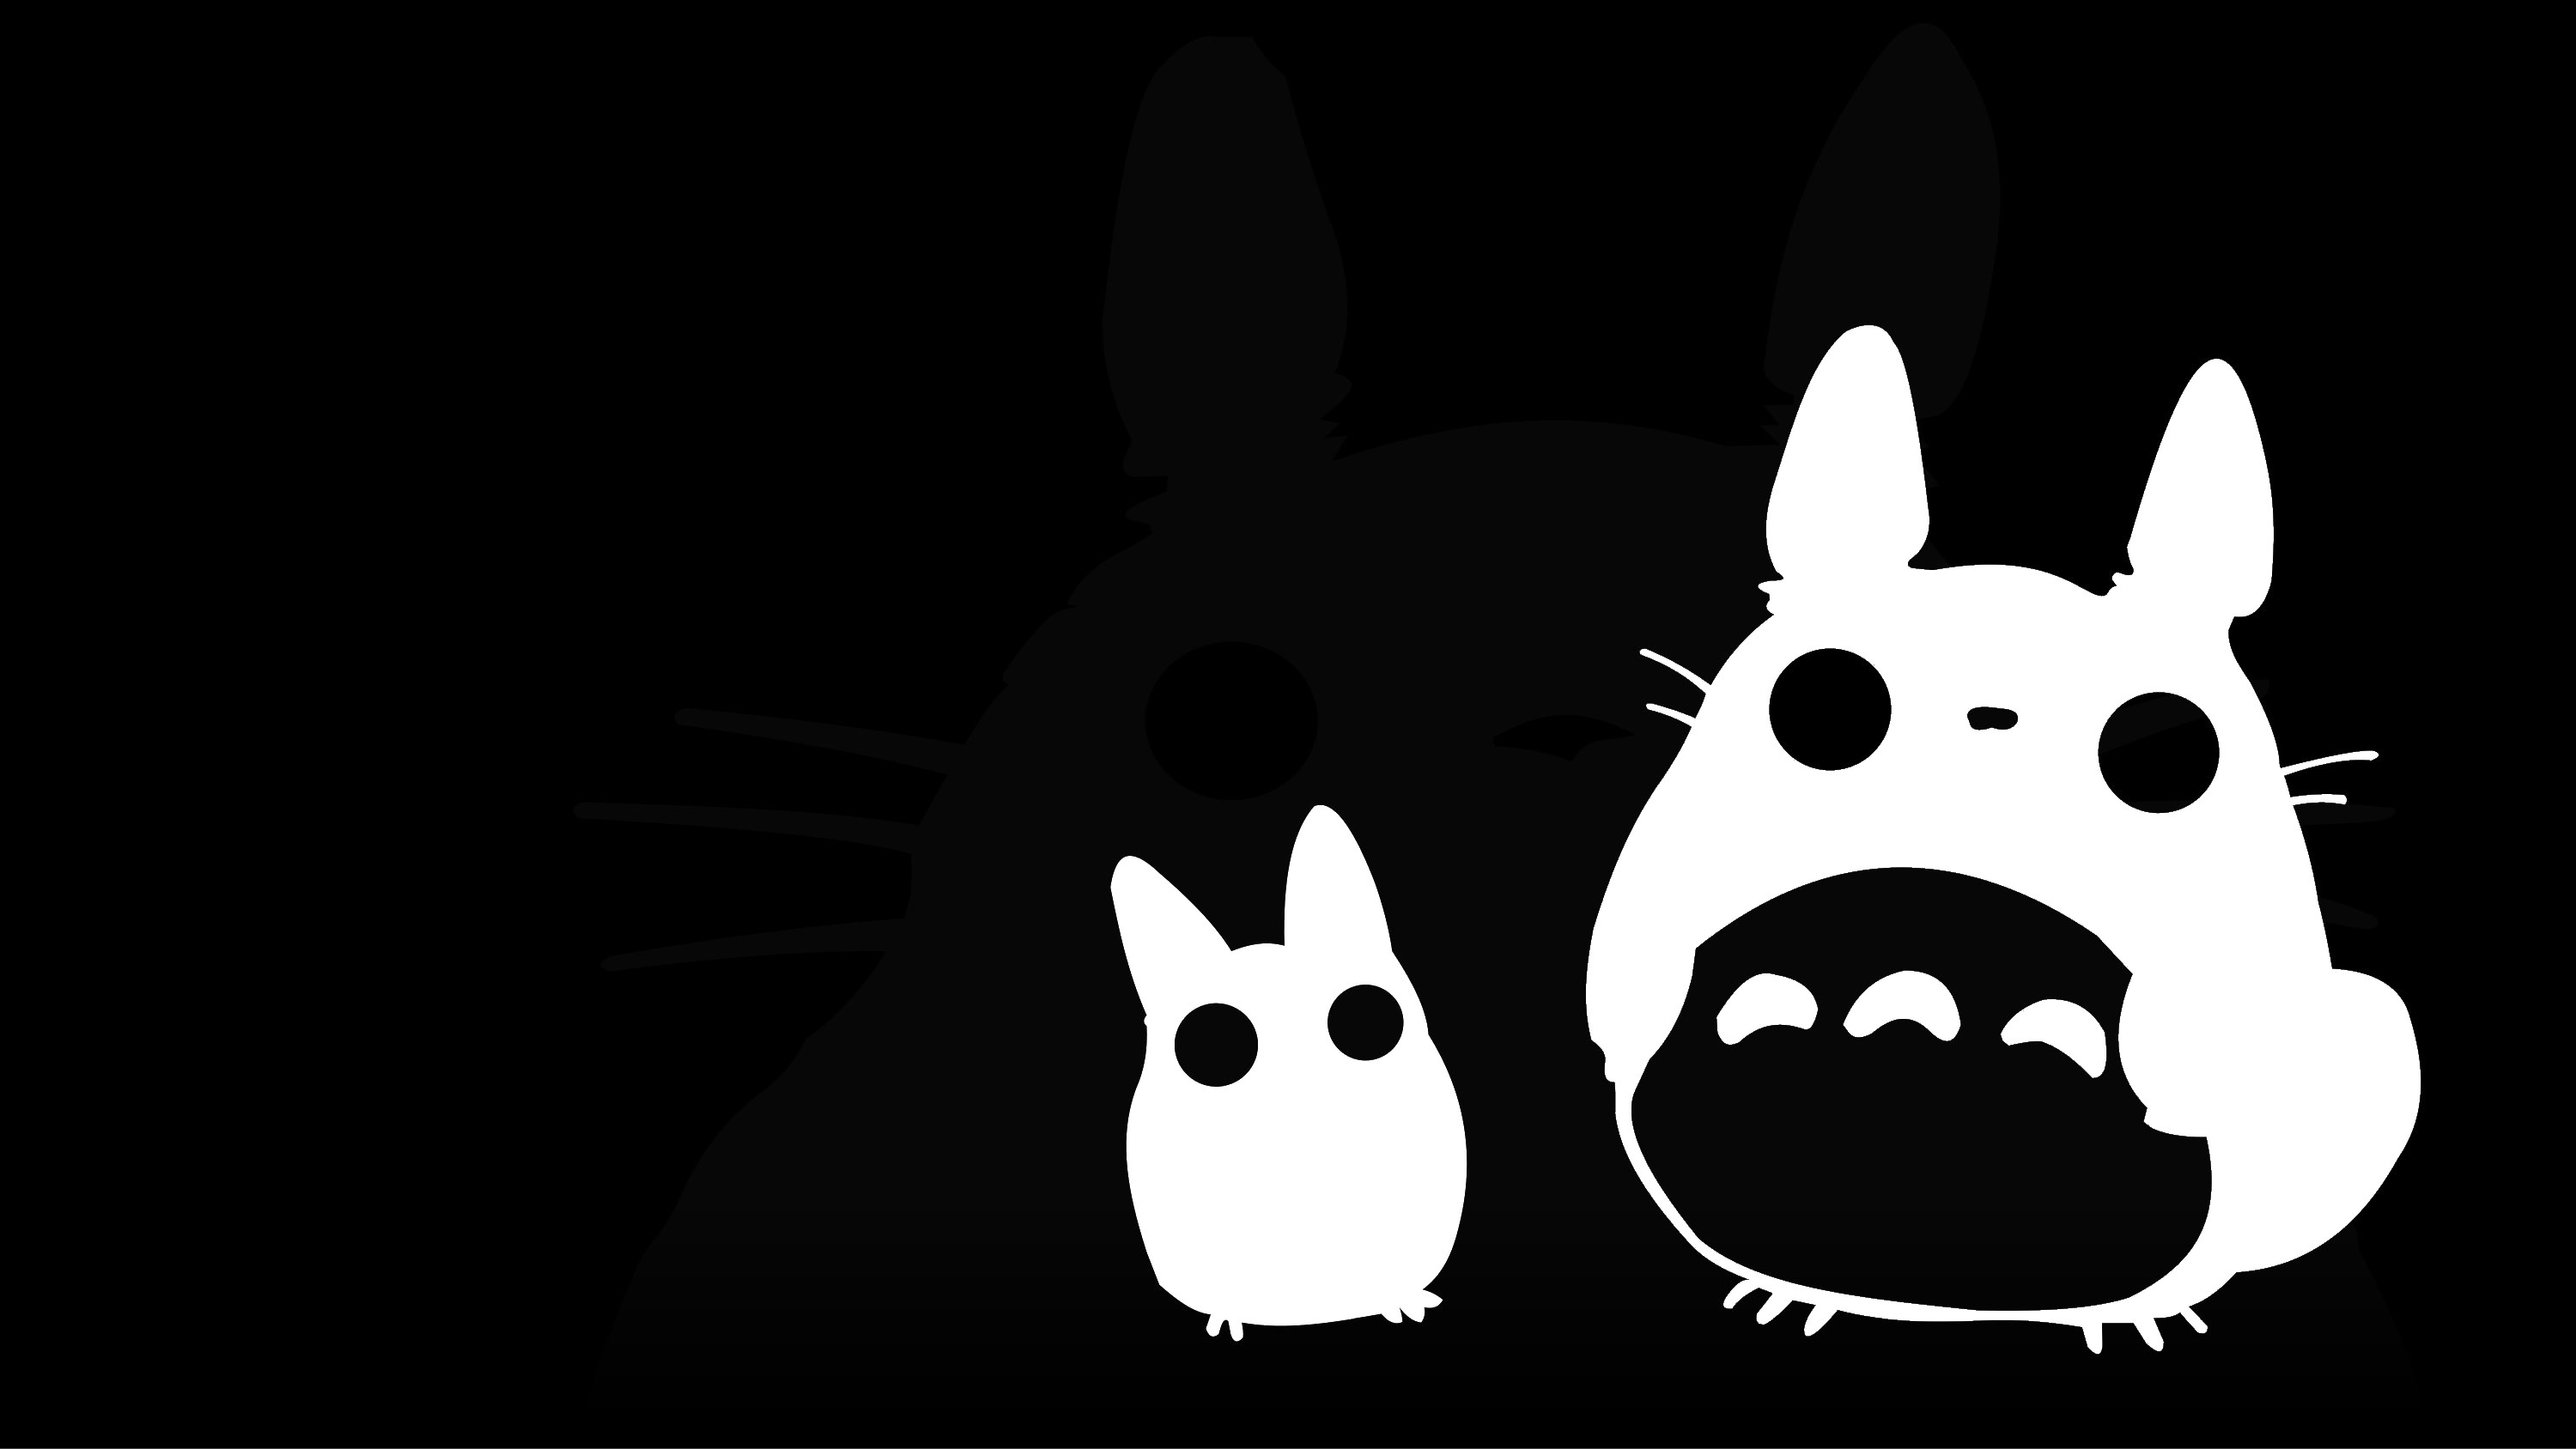 totoro wallpapers hd free download